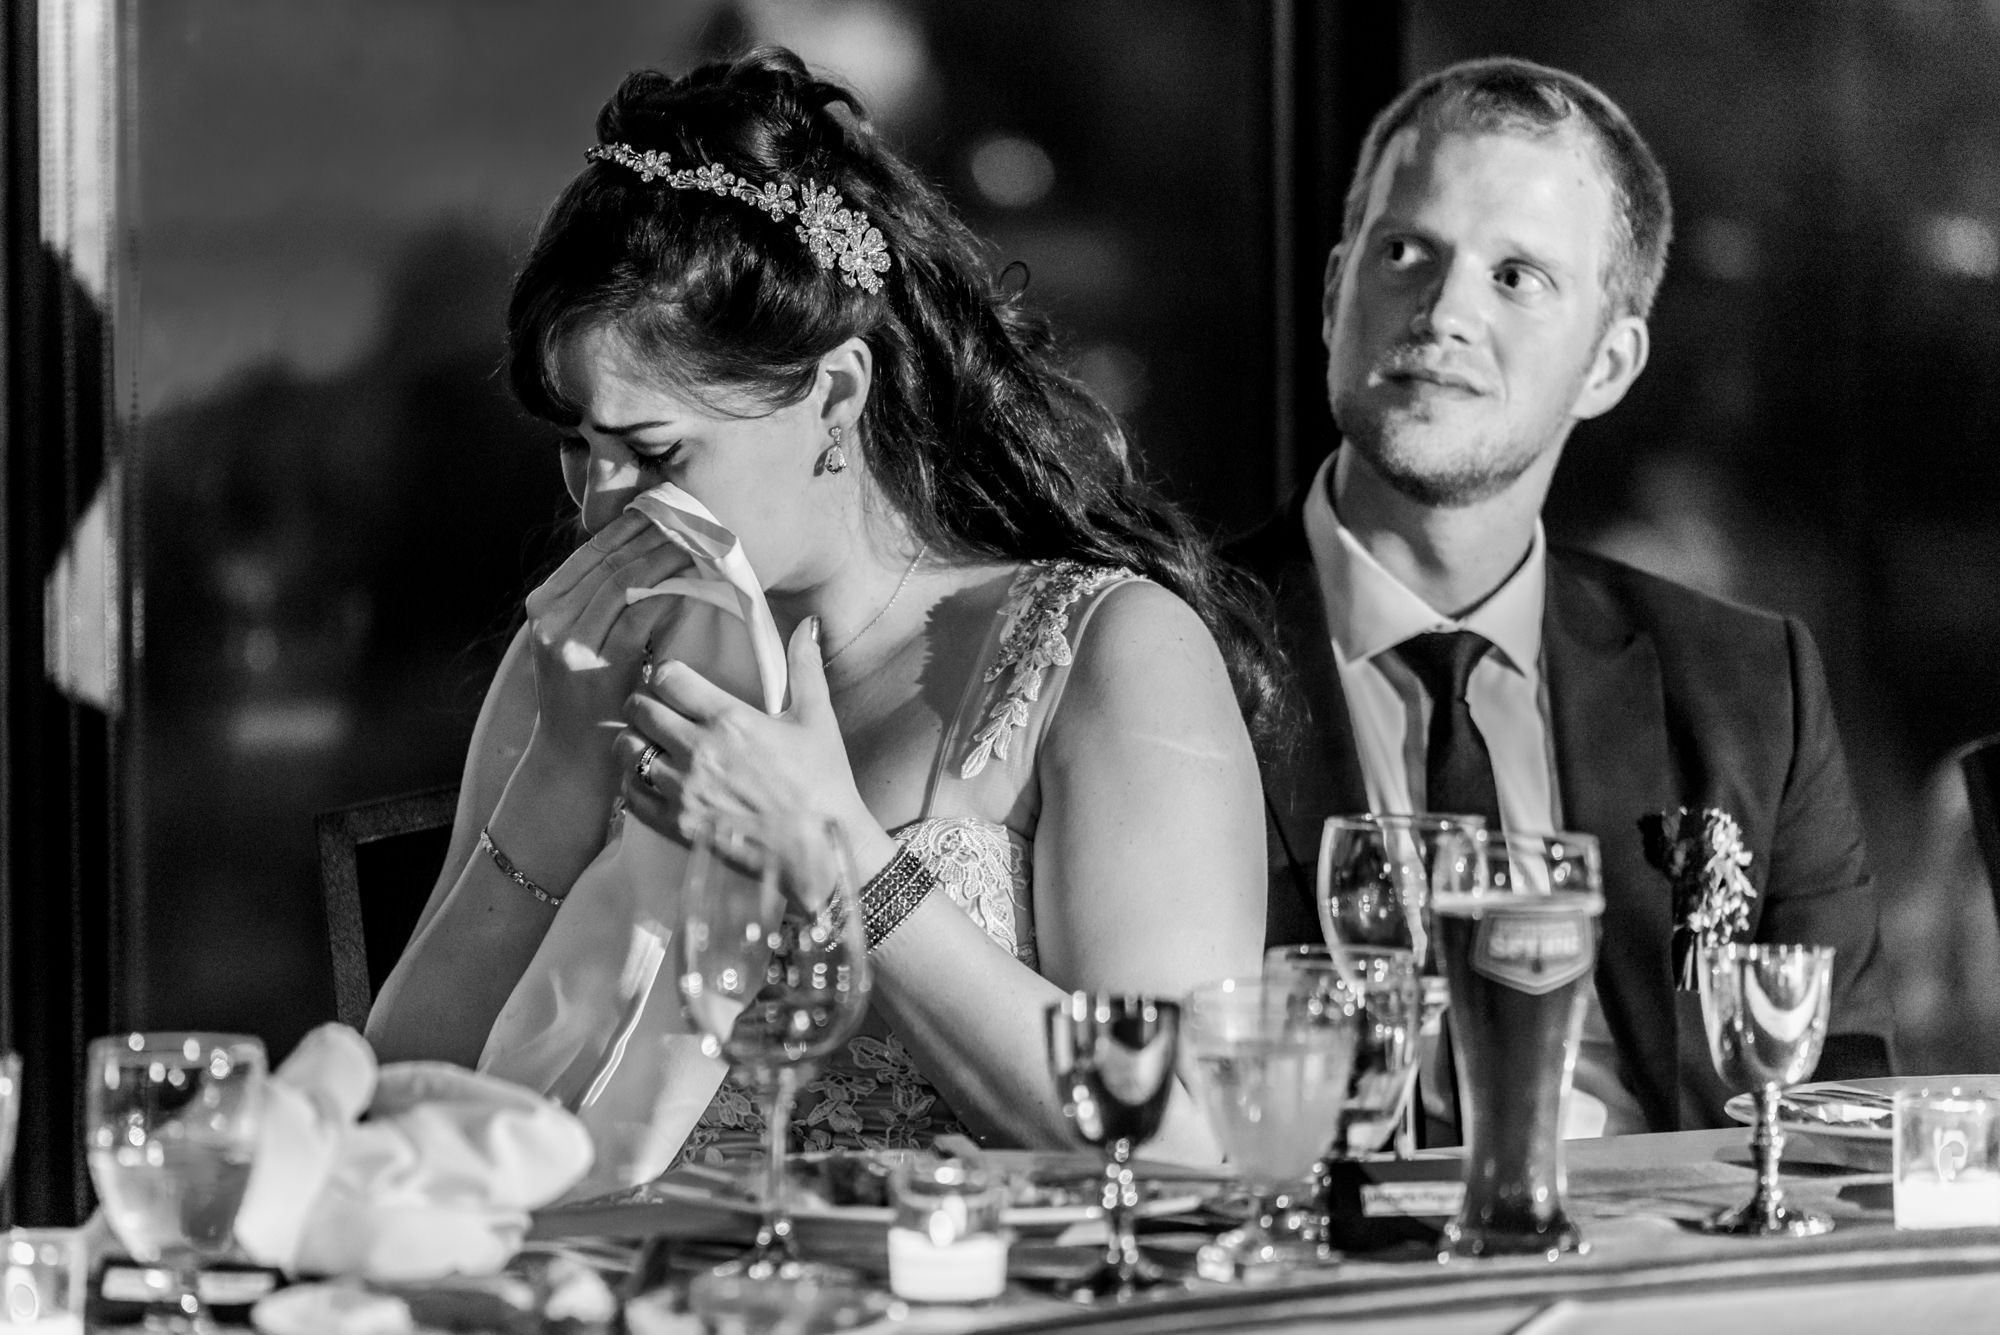 193236hollyburn_country_club_wedding_photographer_reception17.jpg